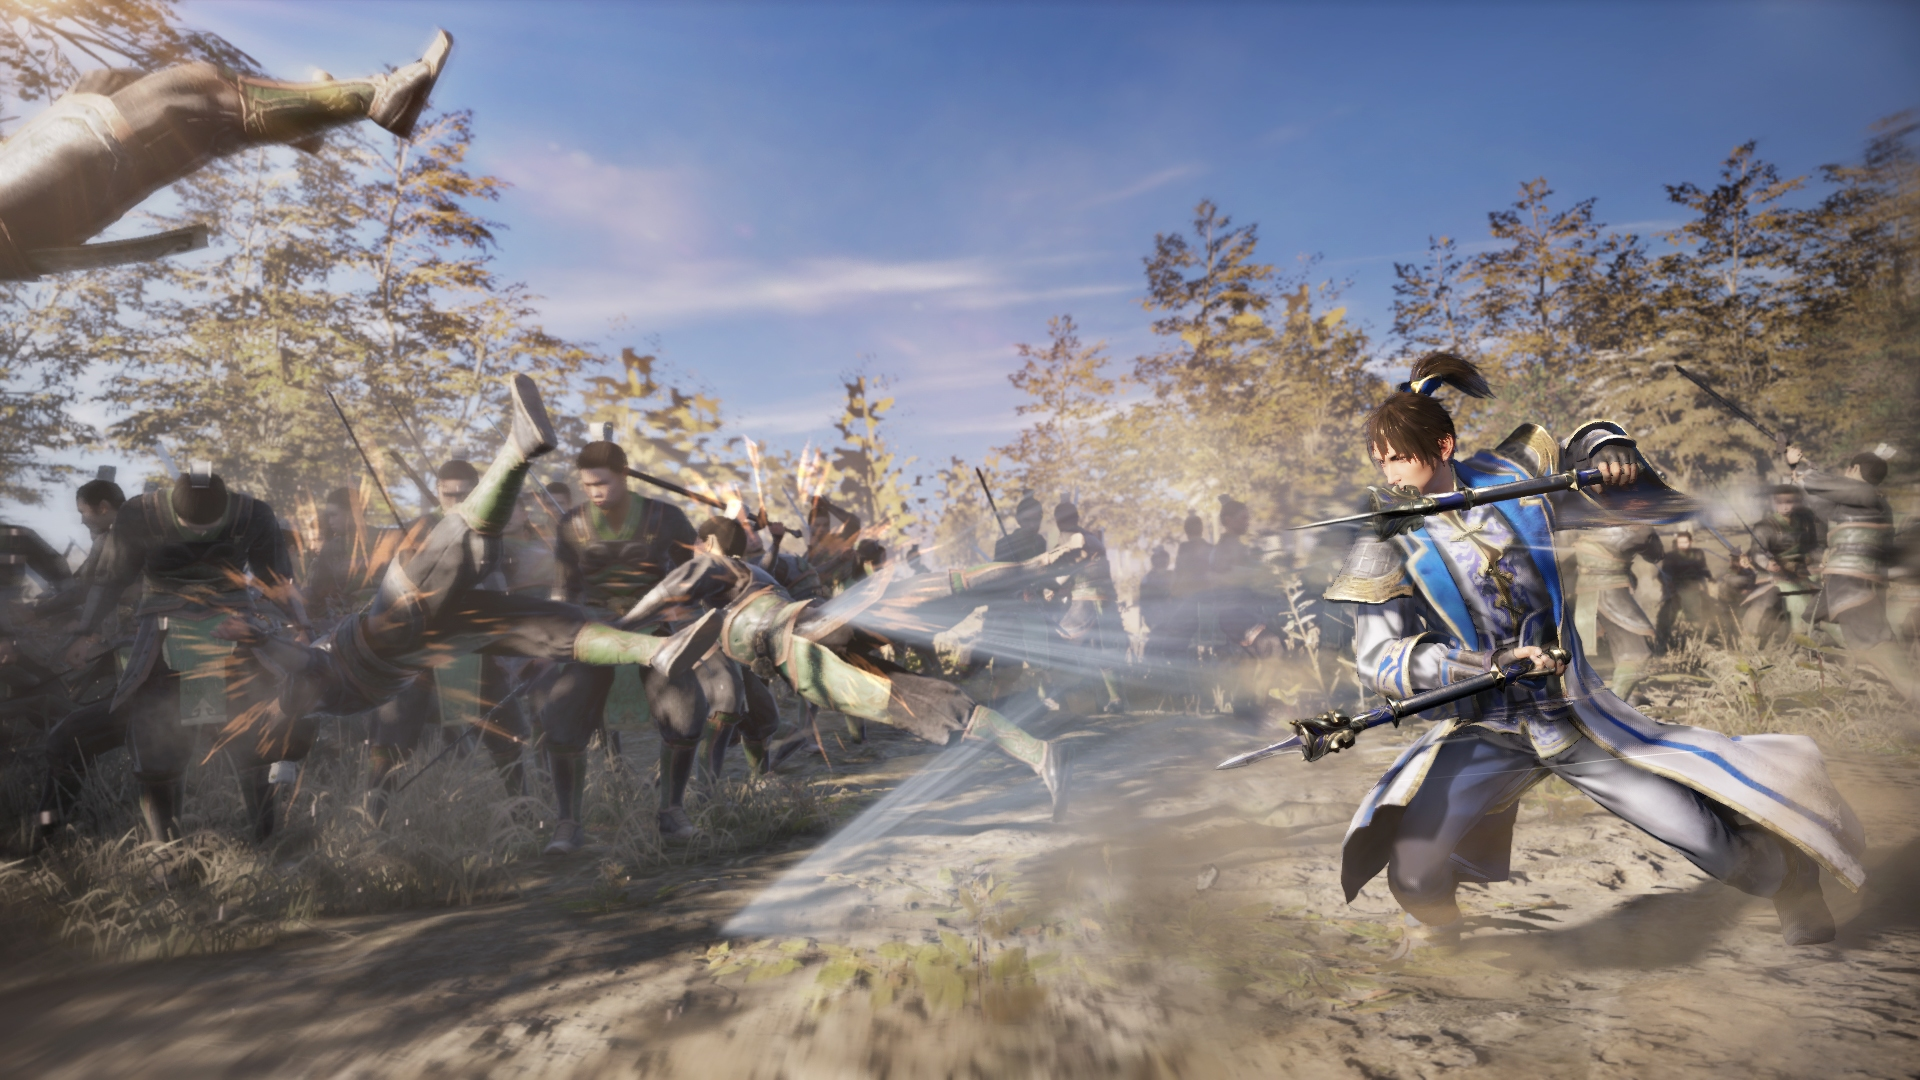 Dynasty Warriors 9 PC Dipenuhi Review Negatif!